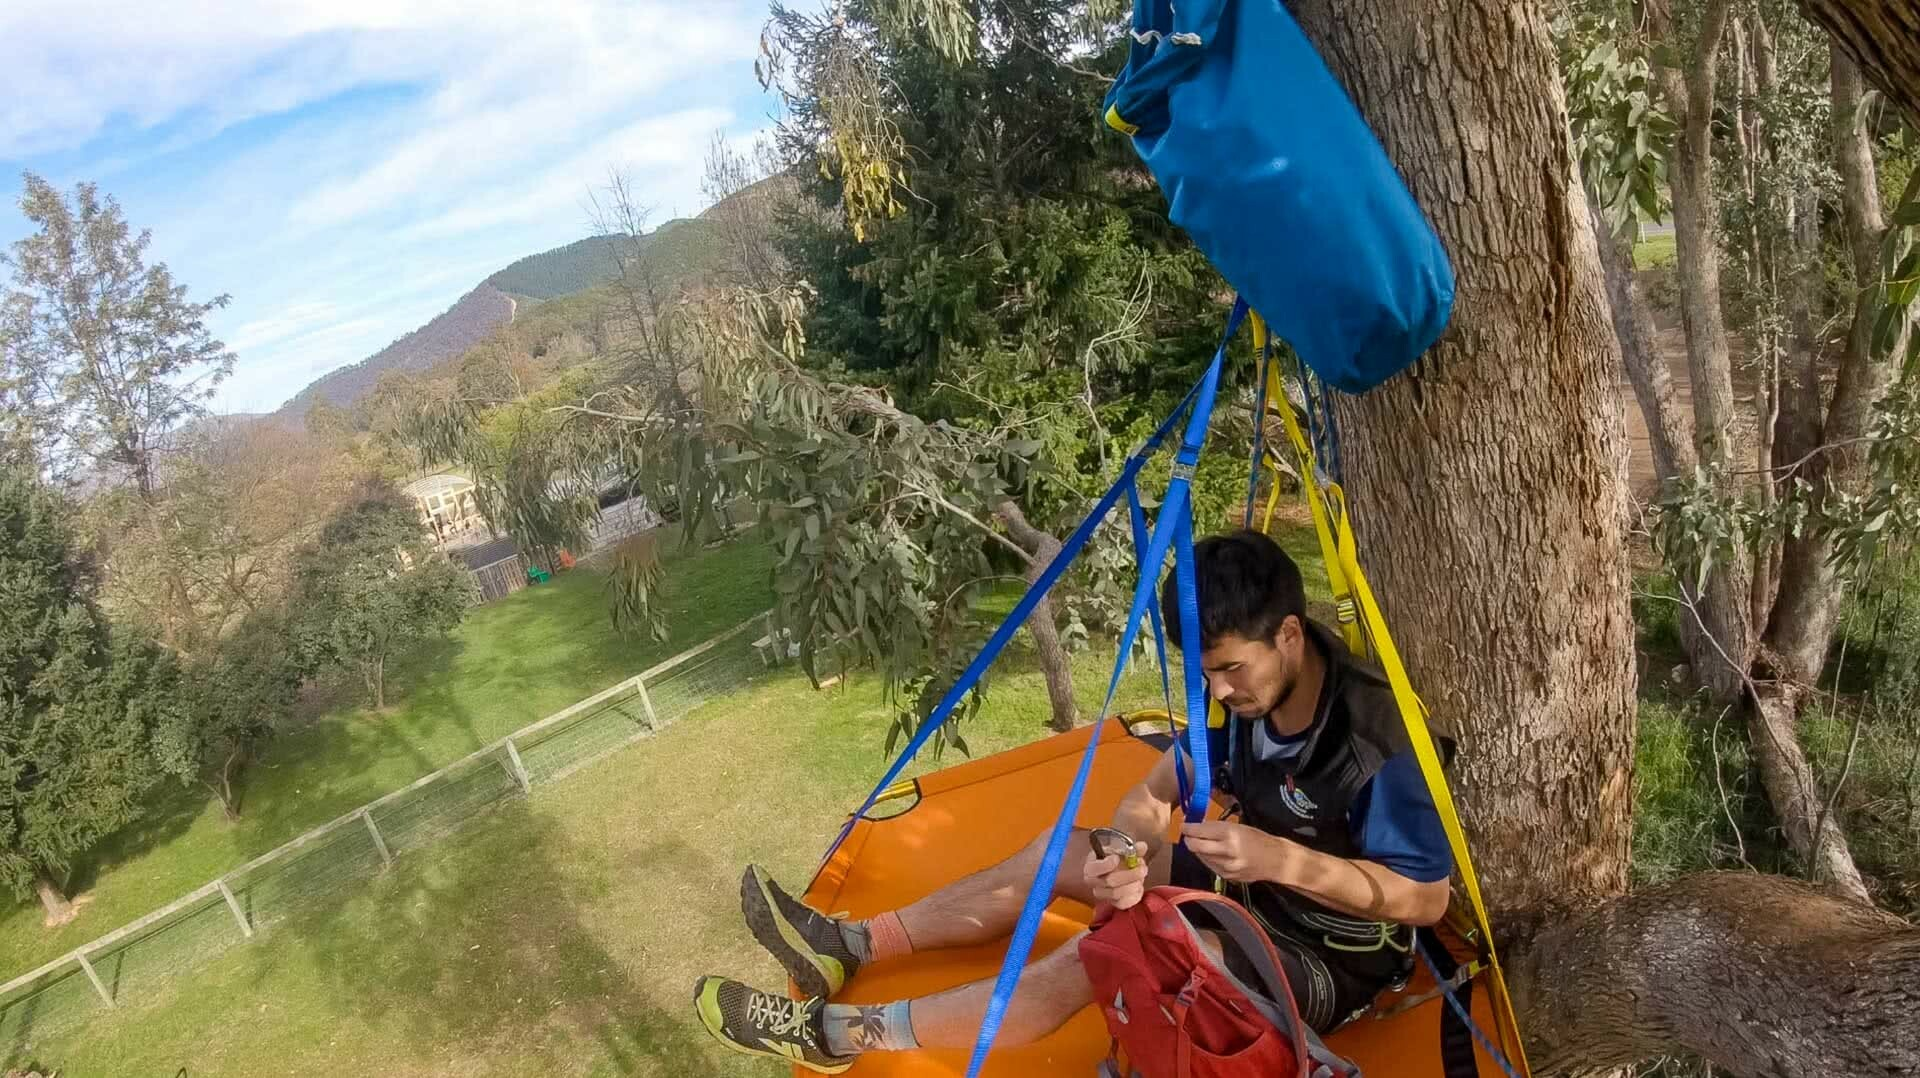 Stan Meissner - Lockdown Adventures - Day 6 - Tea in a Tree, Stan Meissner Has Done A Lockdown Adventure Every Day In Victoria,